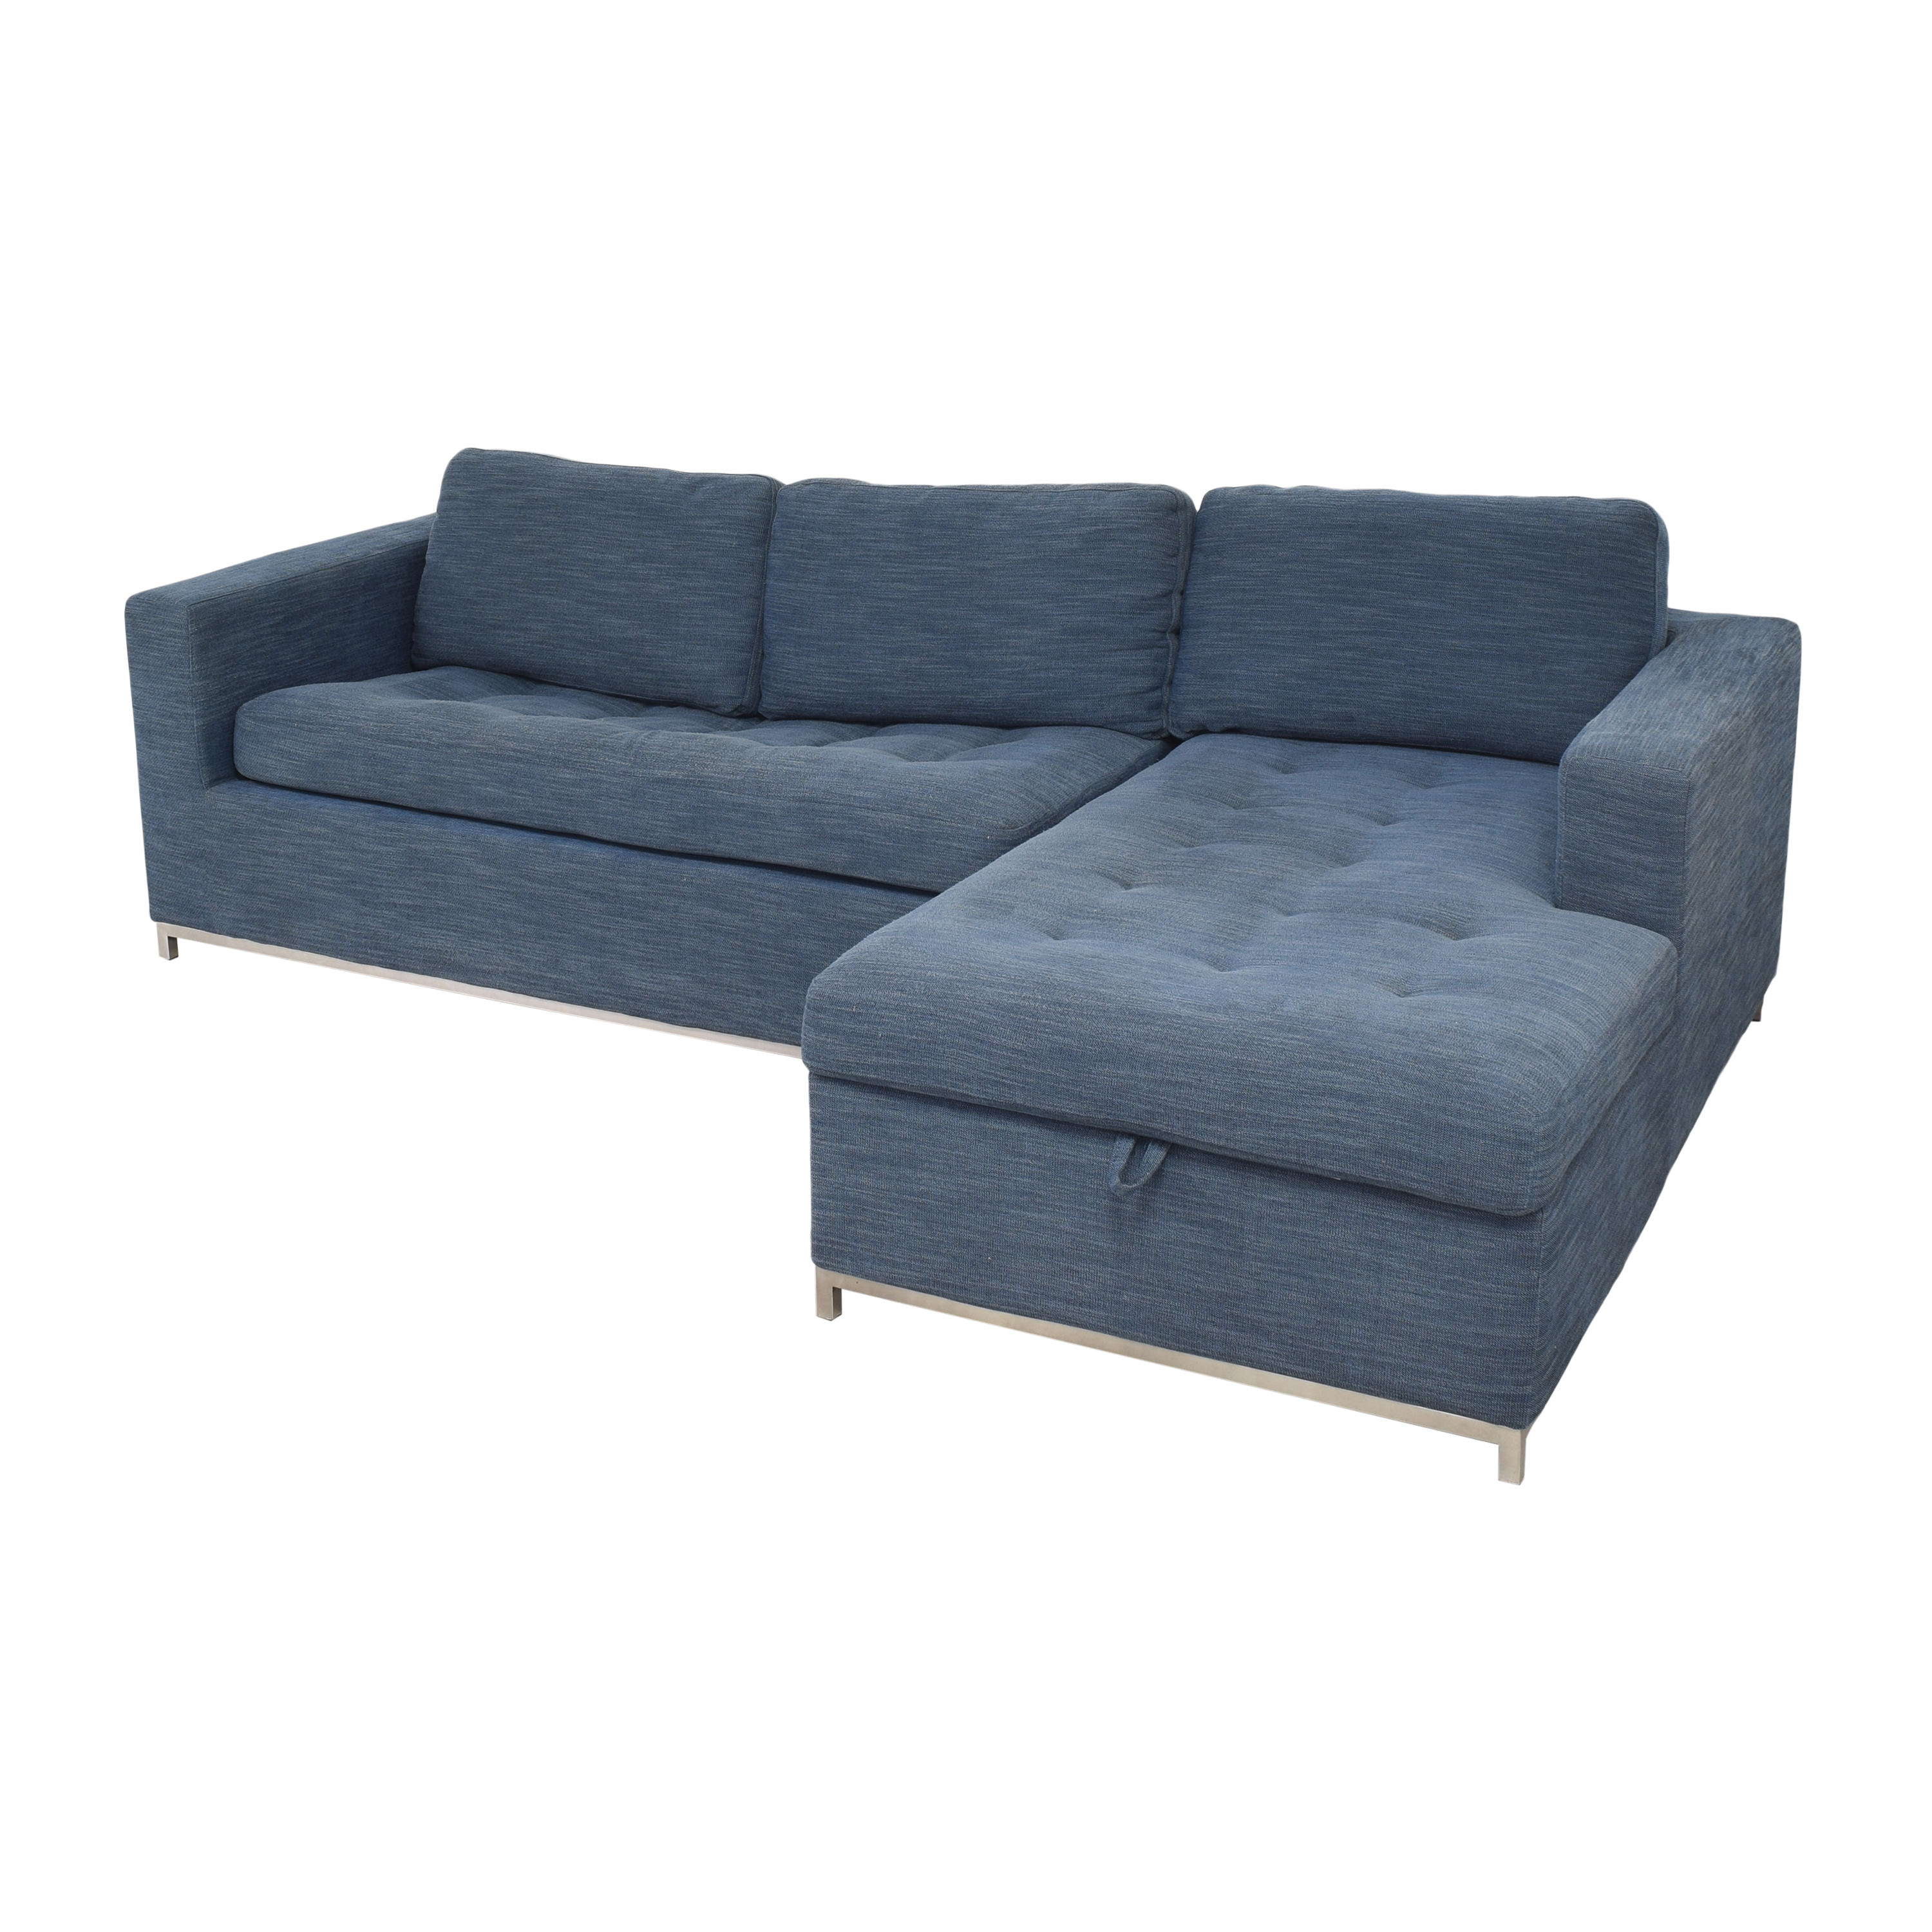 Article Soma Sectional Sofa Bed Article